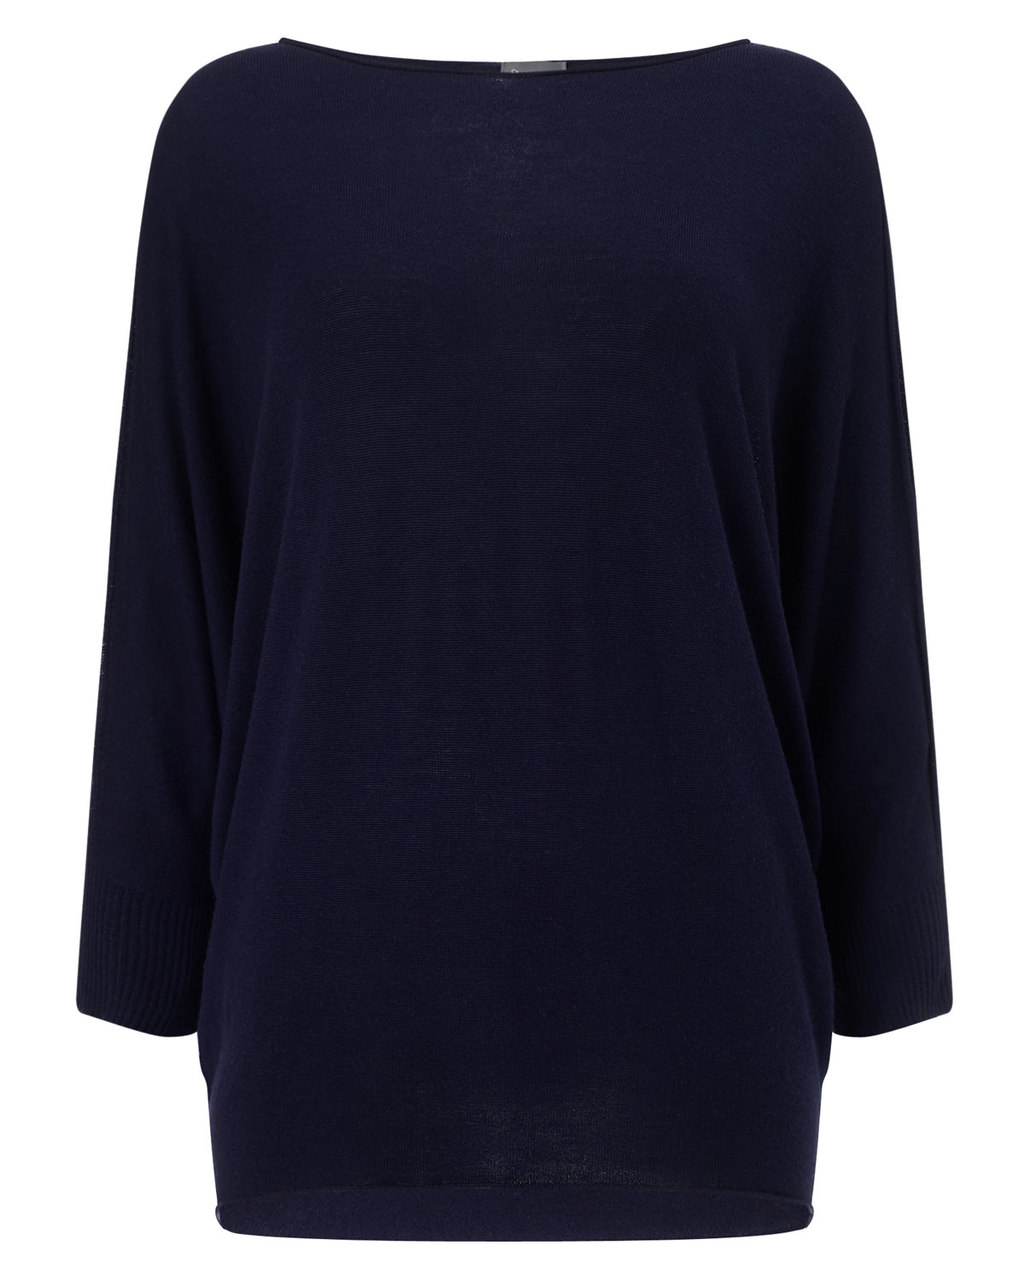 Becca Batwing Knit - neckline: slash/boat neckline; sleeve style: dolman/batwing; pattern: plain; length: below the bottom; style: standard; predominant colour: navy; occasions: casual, creative work; fibres: cotton - mix; fit: loose; sleeve length: long sleeve; texture group: knits/crochet; pattern type: knitted - fine stitch; season: a/w 2015; wardrobe: basic